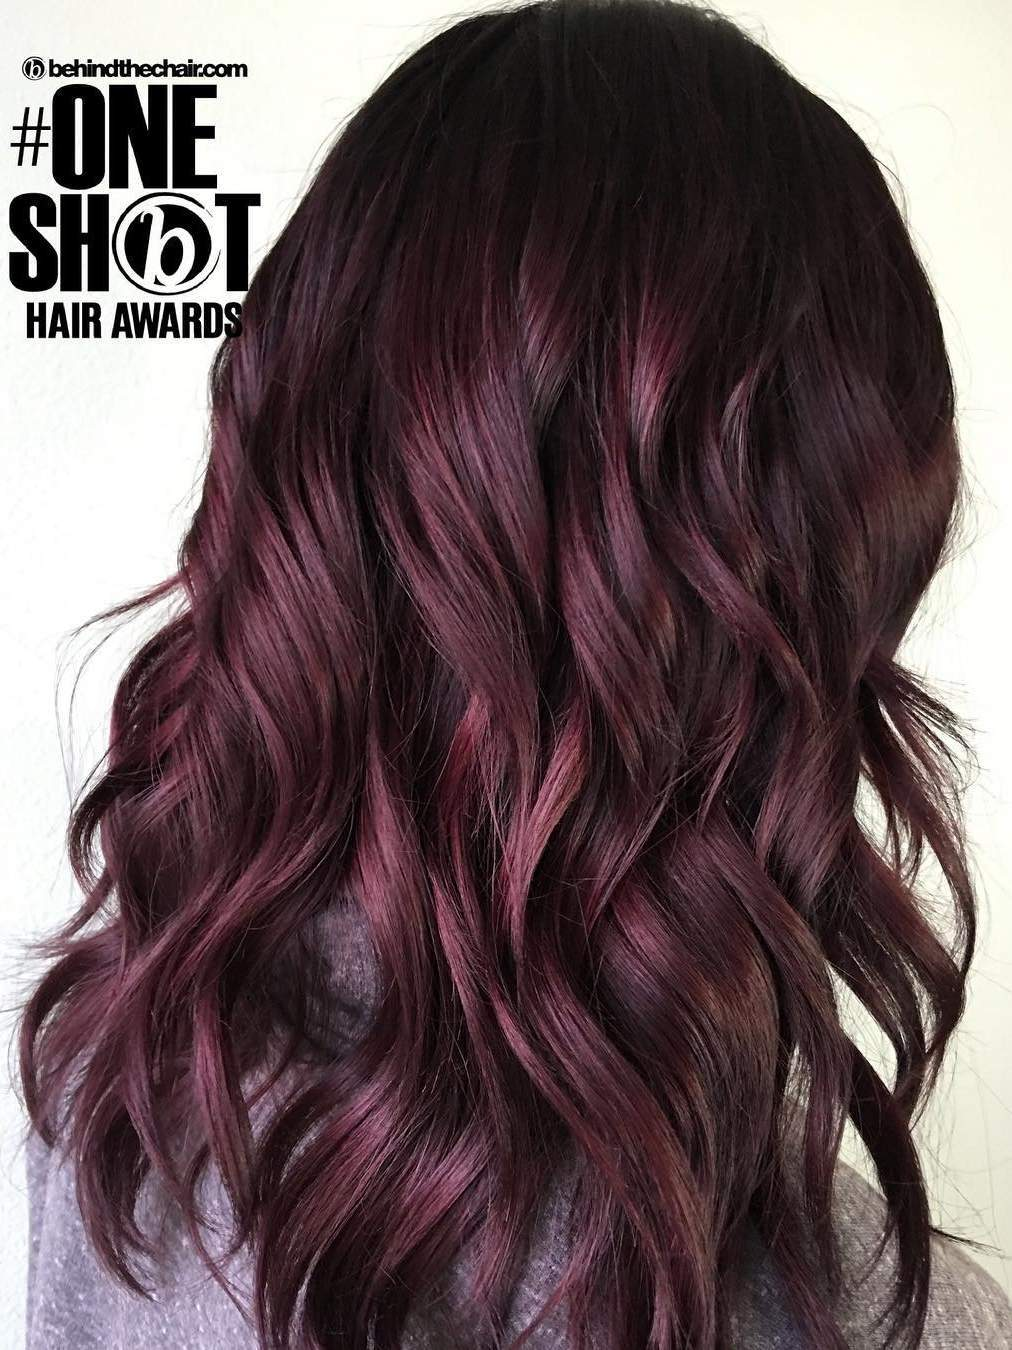 These 3 Hair Color Trends Are About to Be Huge for Brunettes d06d822047574234ebcce85005bdccb4